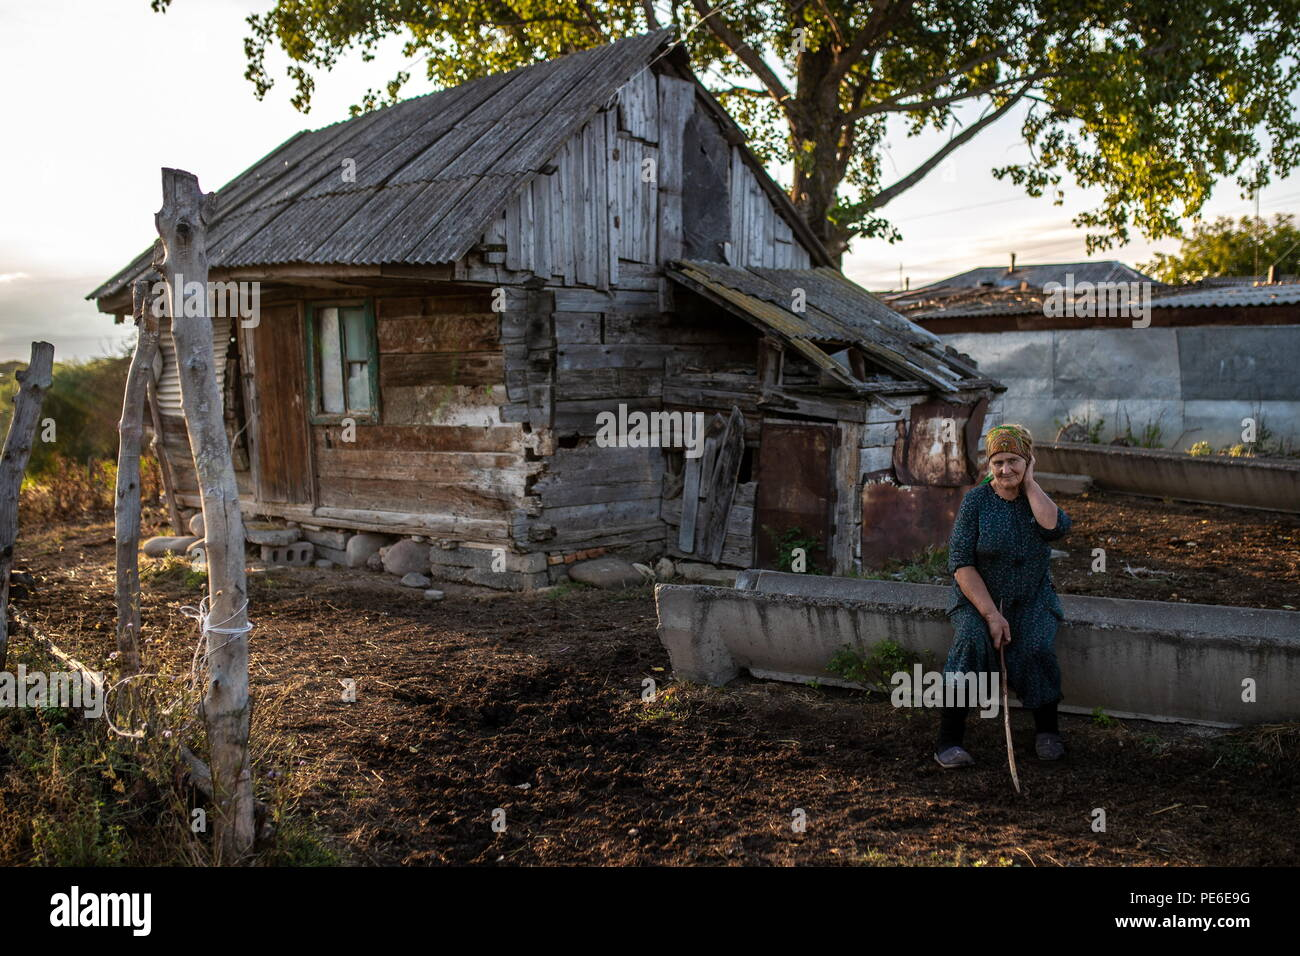 South Ossetia. 12th Aug, 2018. SOUTH OSSETIA - AUGUST 12, 2018: Margarita Madzigova, 63, poses outside her house in the village of Khetagurovo, Tskhinvali District, South Ossetia; Margarita and her husband Alikhan have been running a farm since their house was restored after the 2008 South Ossetian-Georgian military conflict. Sergei Bobylev/TASS Credit: ITAR-TASS News Agency/Alamy Live News - Stock Image